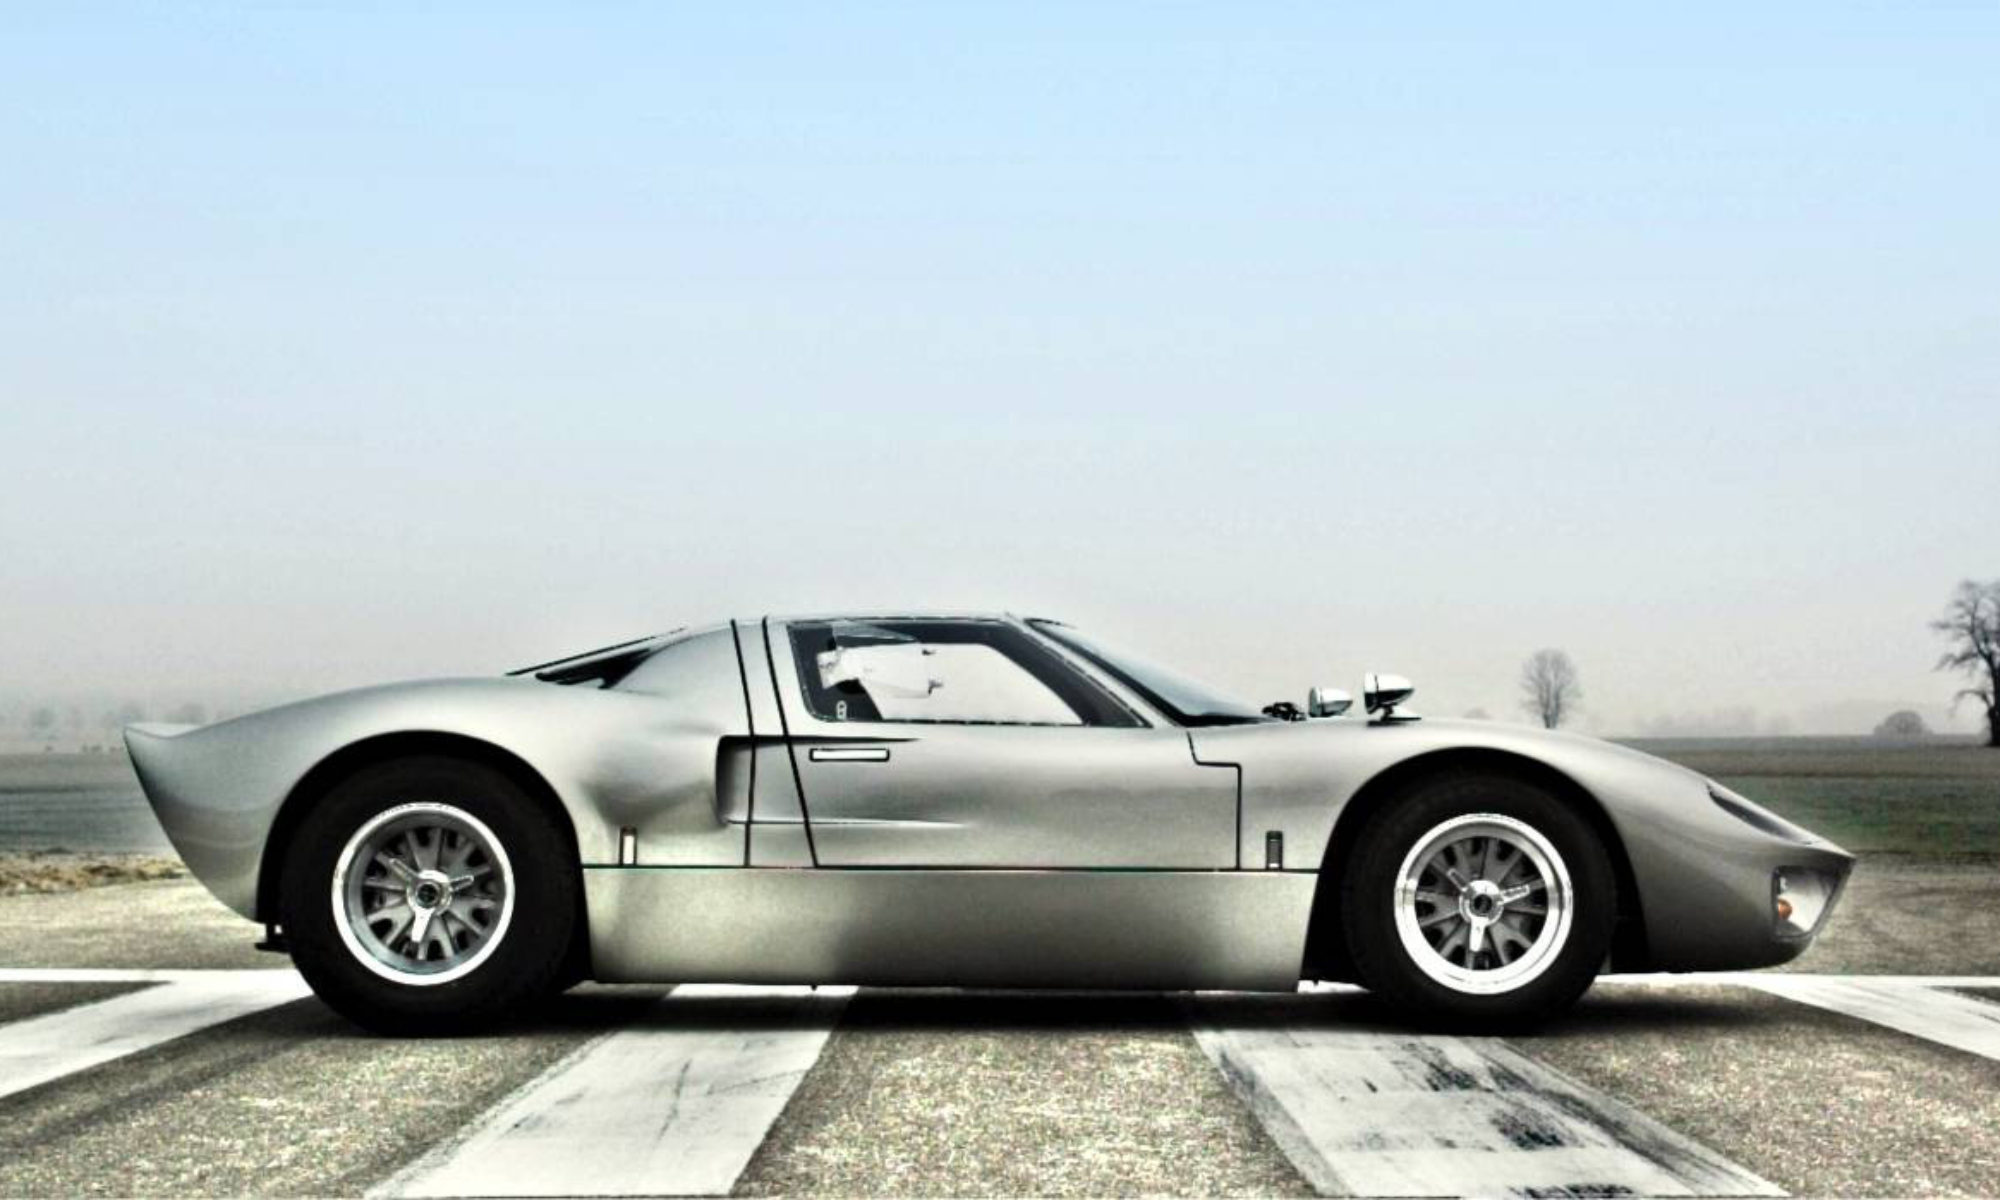 Ford Gt40 Replica For Sale >> Ford Gt40 Replica Car Kits Australasia By Cav Start